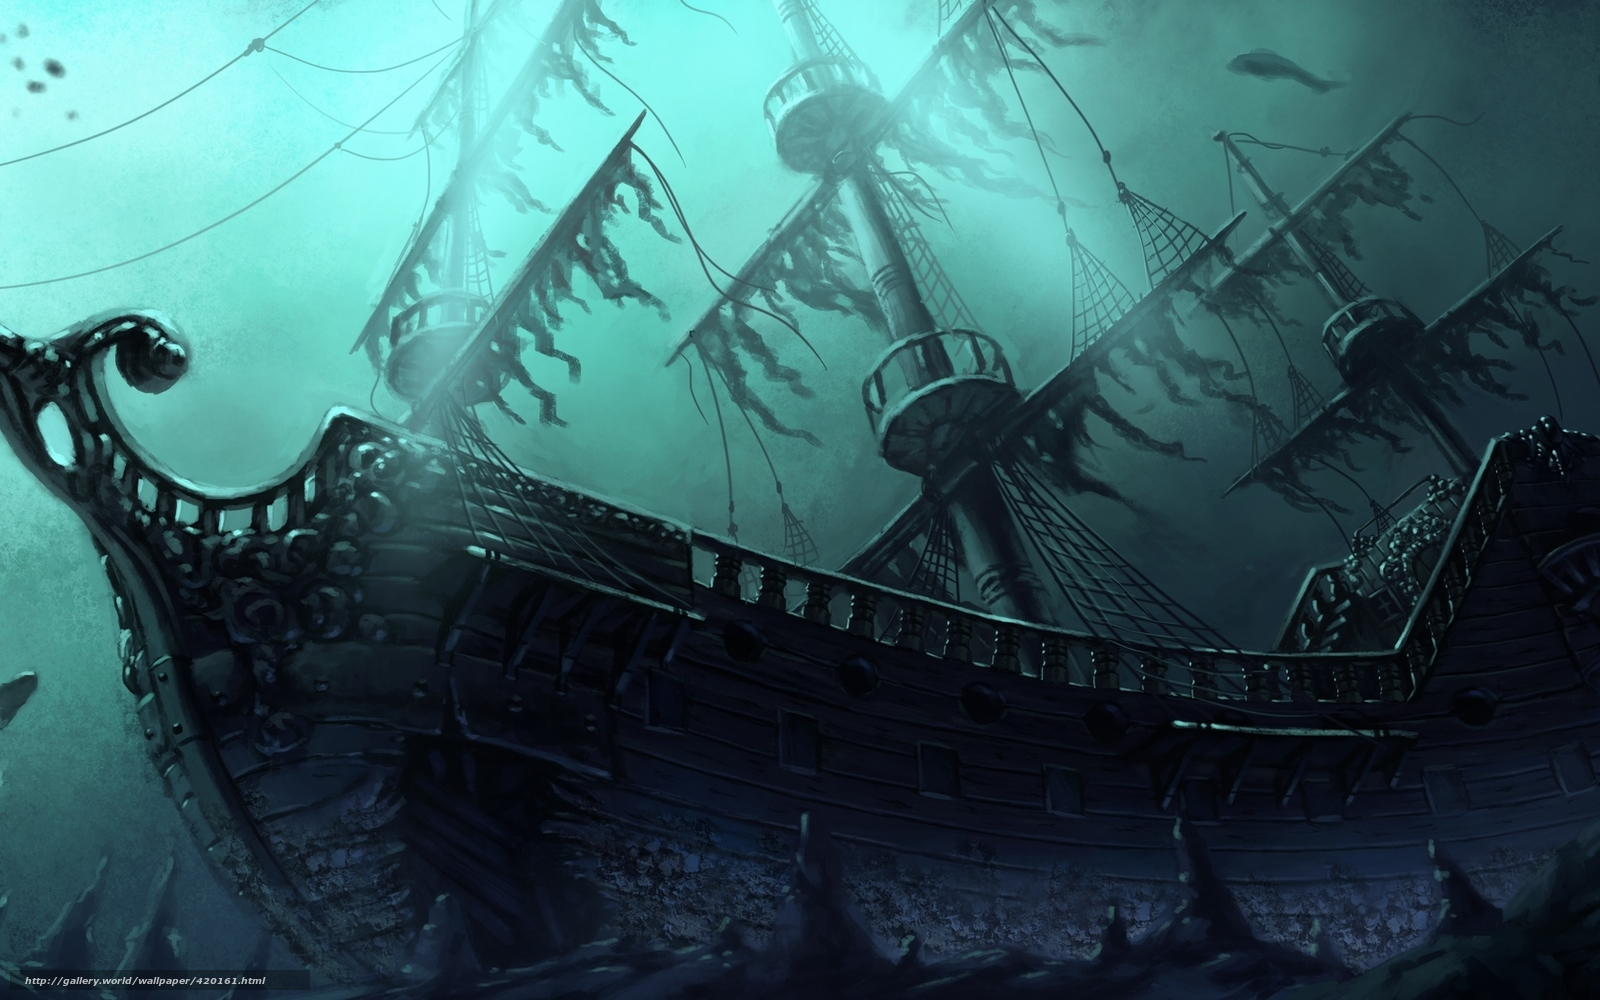 Ghost pirate ship deck background